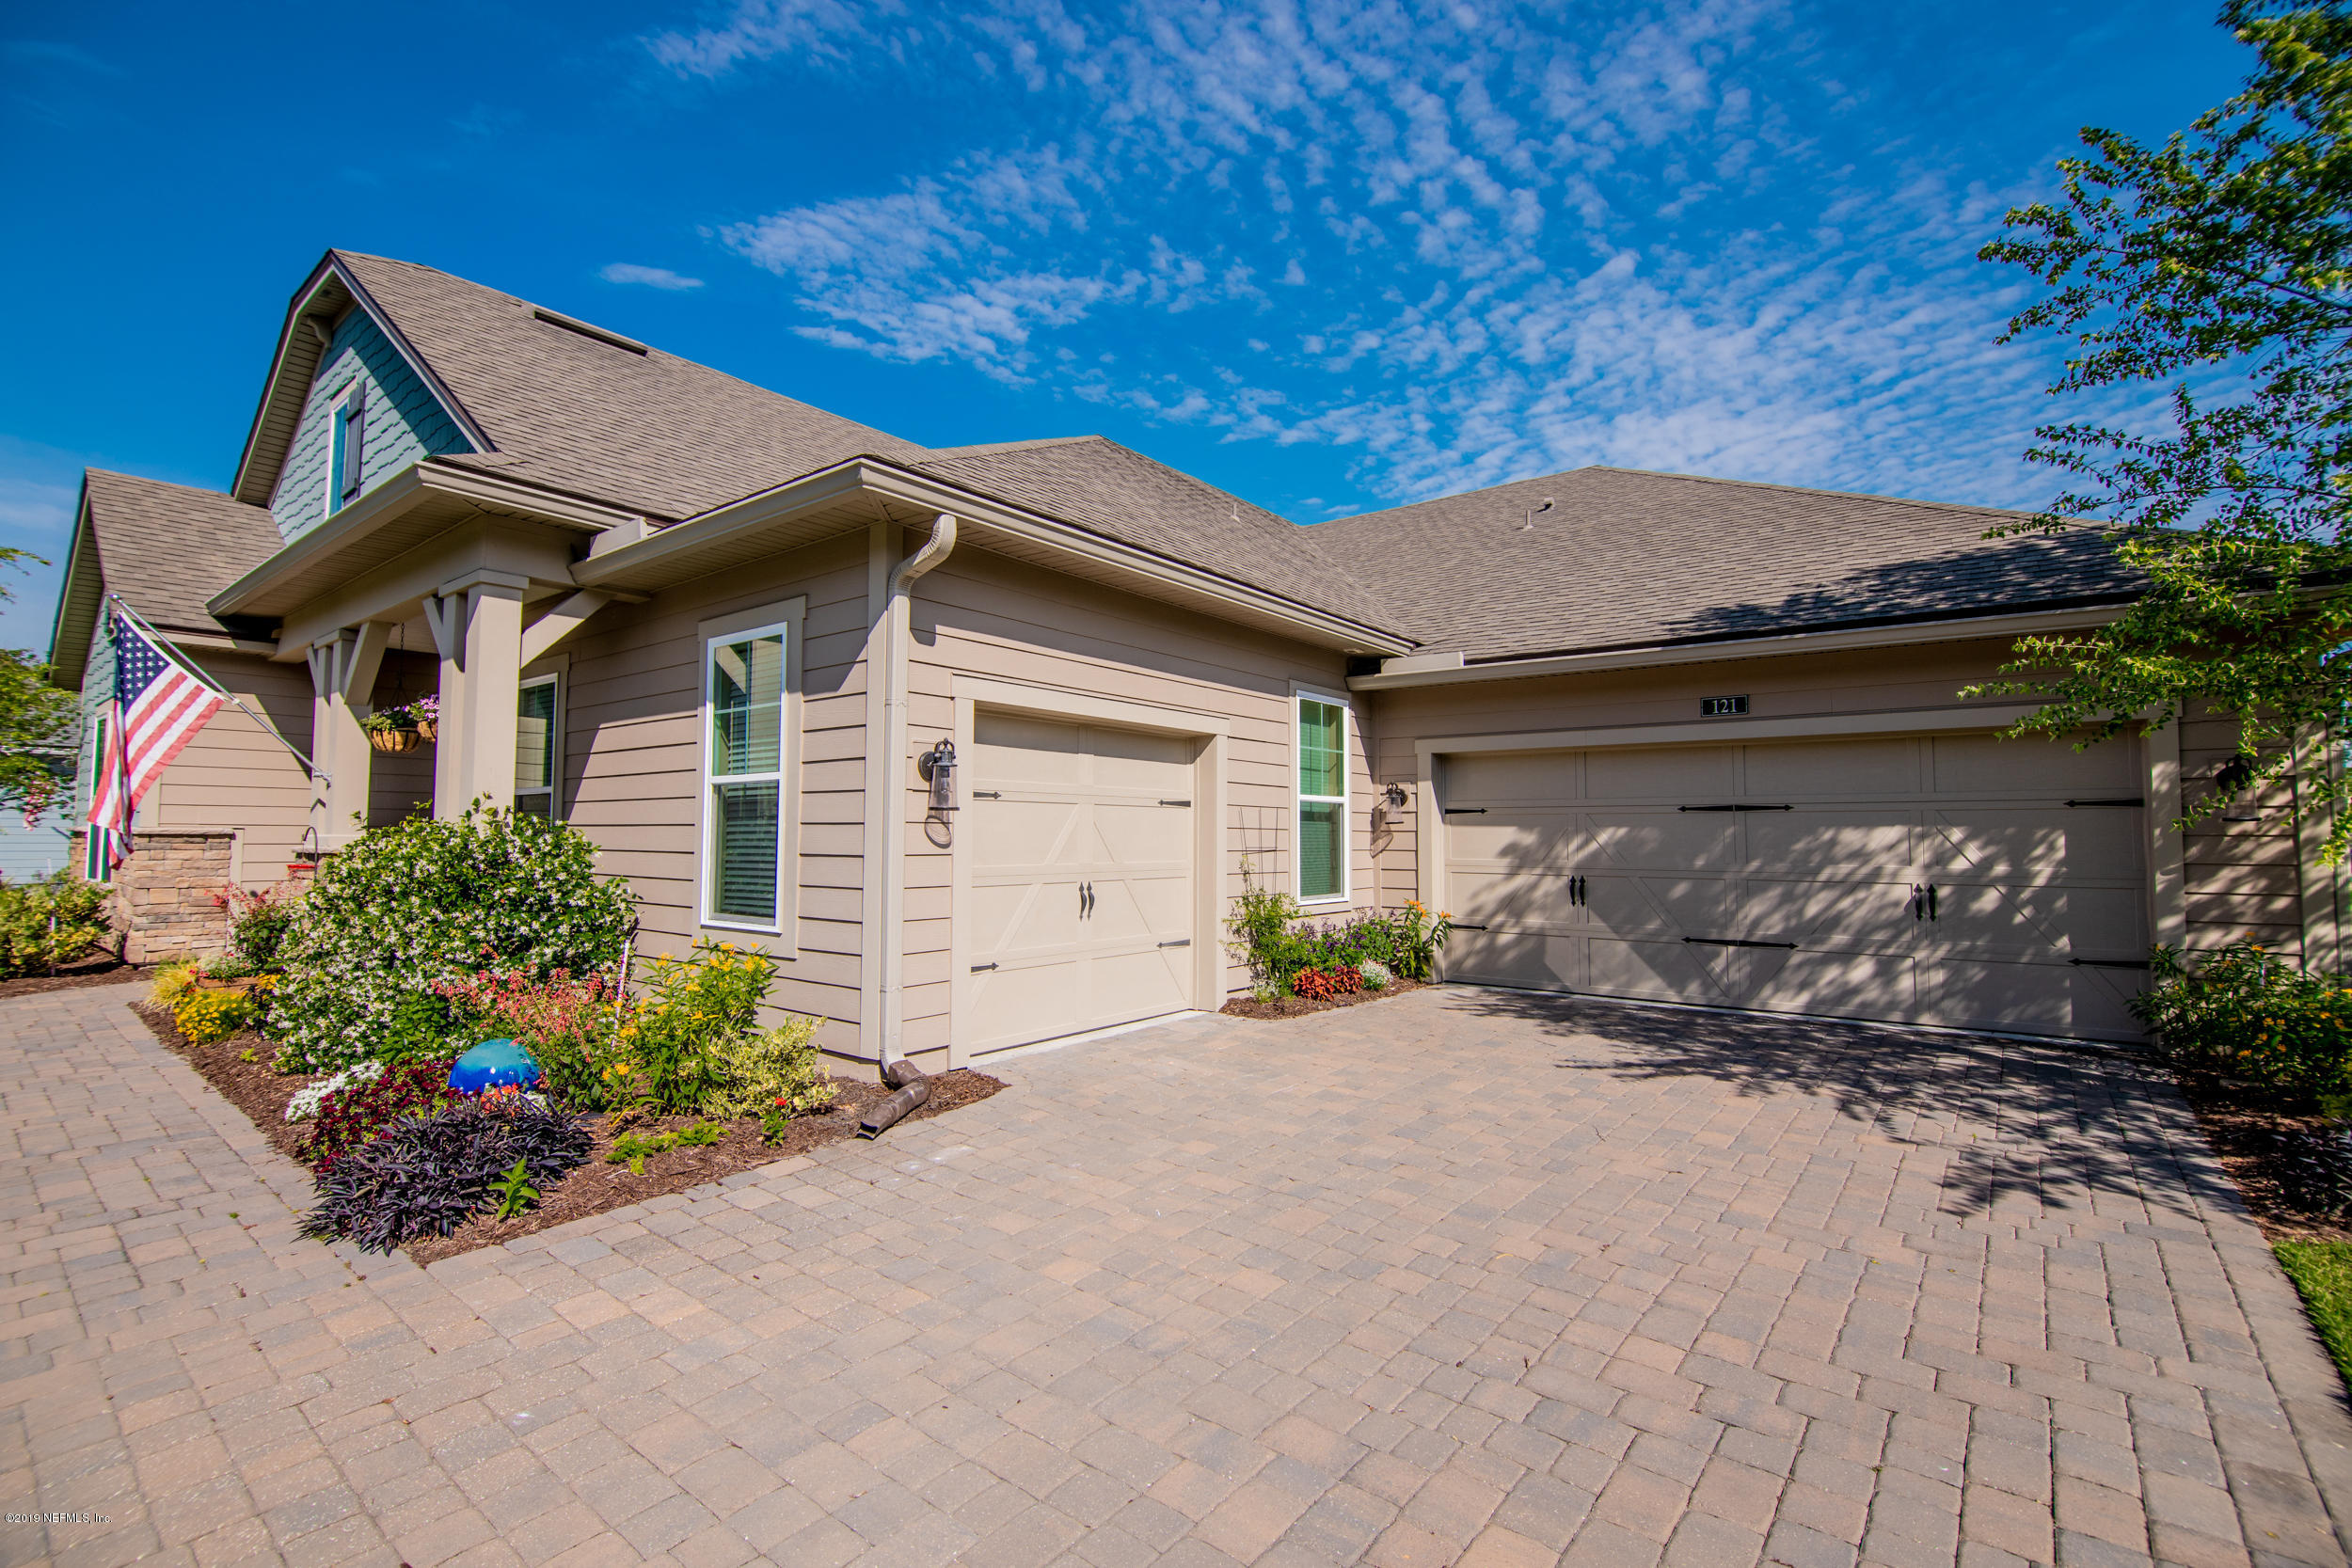 121 CAMERON, PONTE VEDRA, FLORIDA 32081, 4 Bedrooms Bedrooms, ,3 BathroomsBathrooms,Residential - single family,For sale,CAMERON,991838